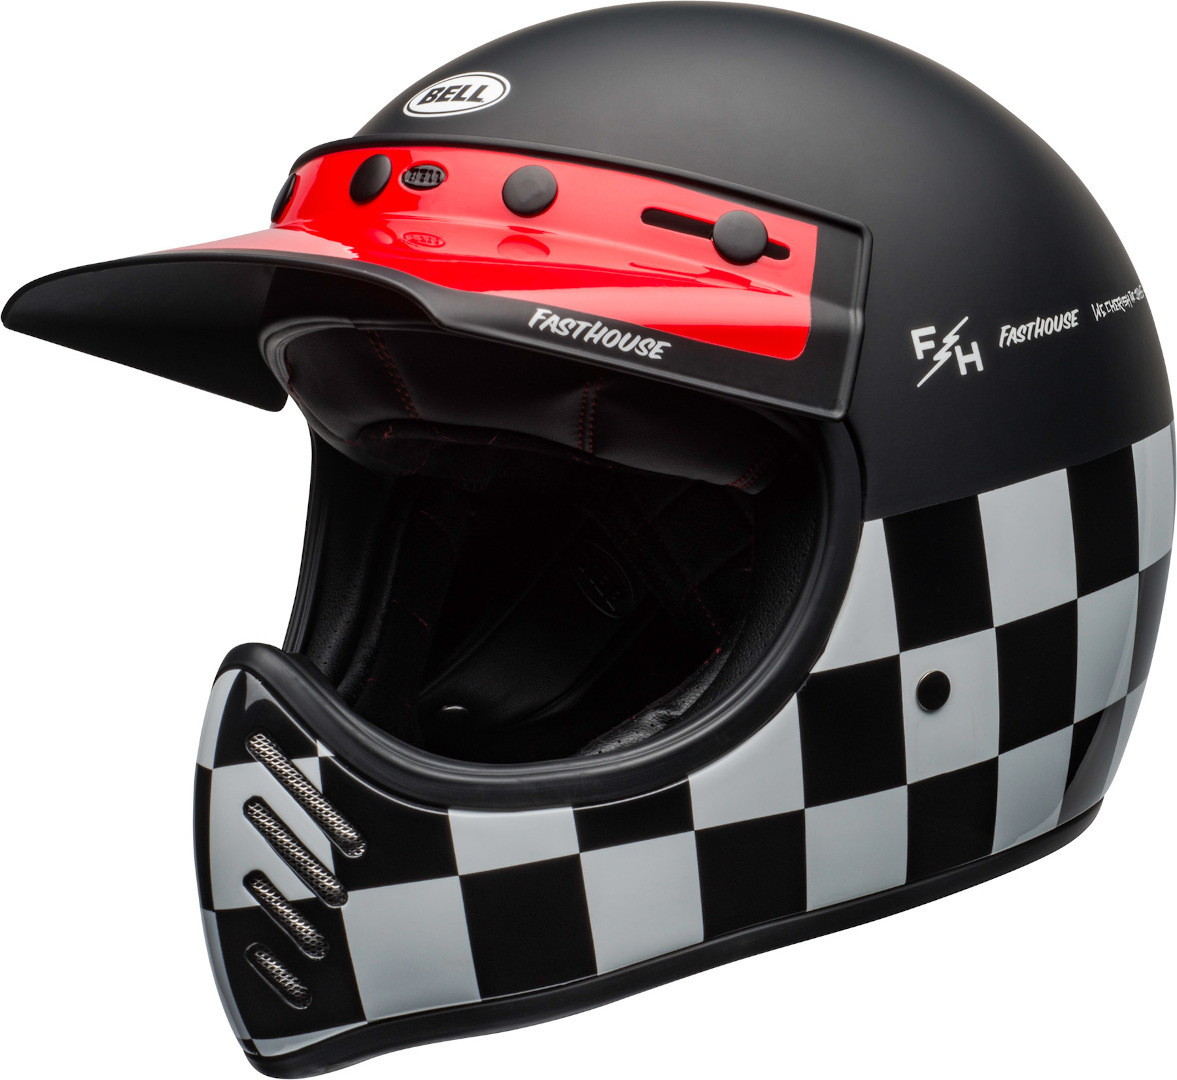 Bell Moto-3 Fasthouse Checkers Trial Helm, schwarz-weiss-rot, Größe M, schwarz-weiss-rot, Größe M